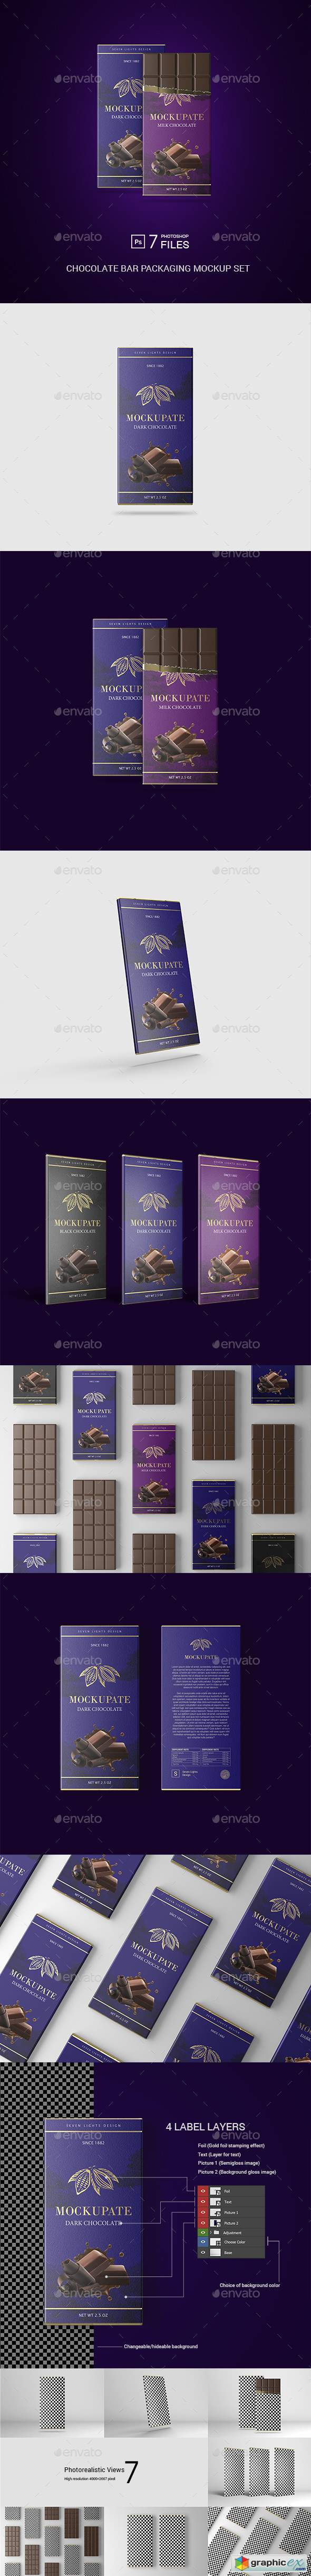 Chocolate Bar Packaging Mockup 22613172